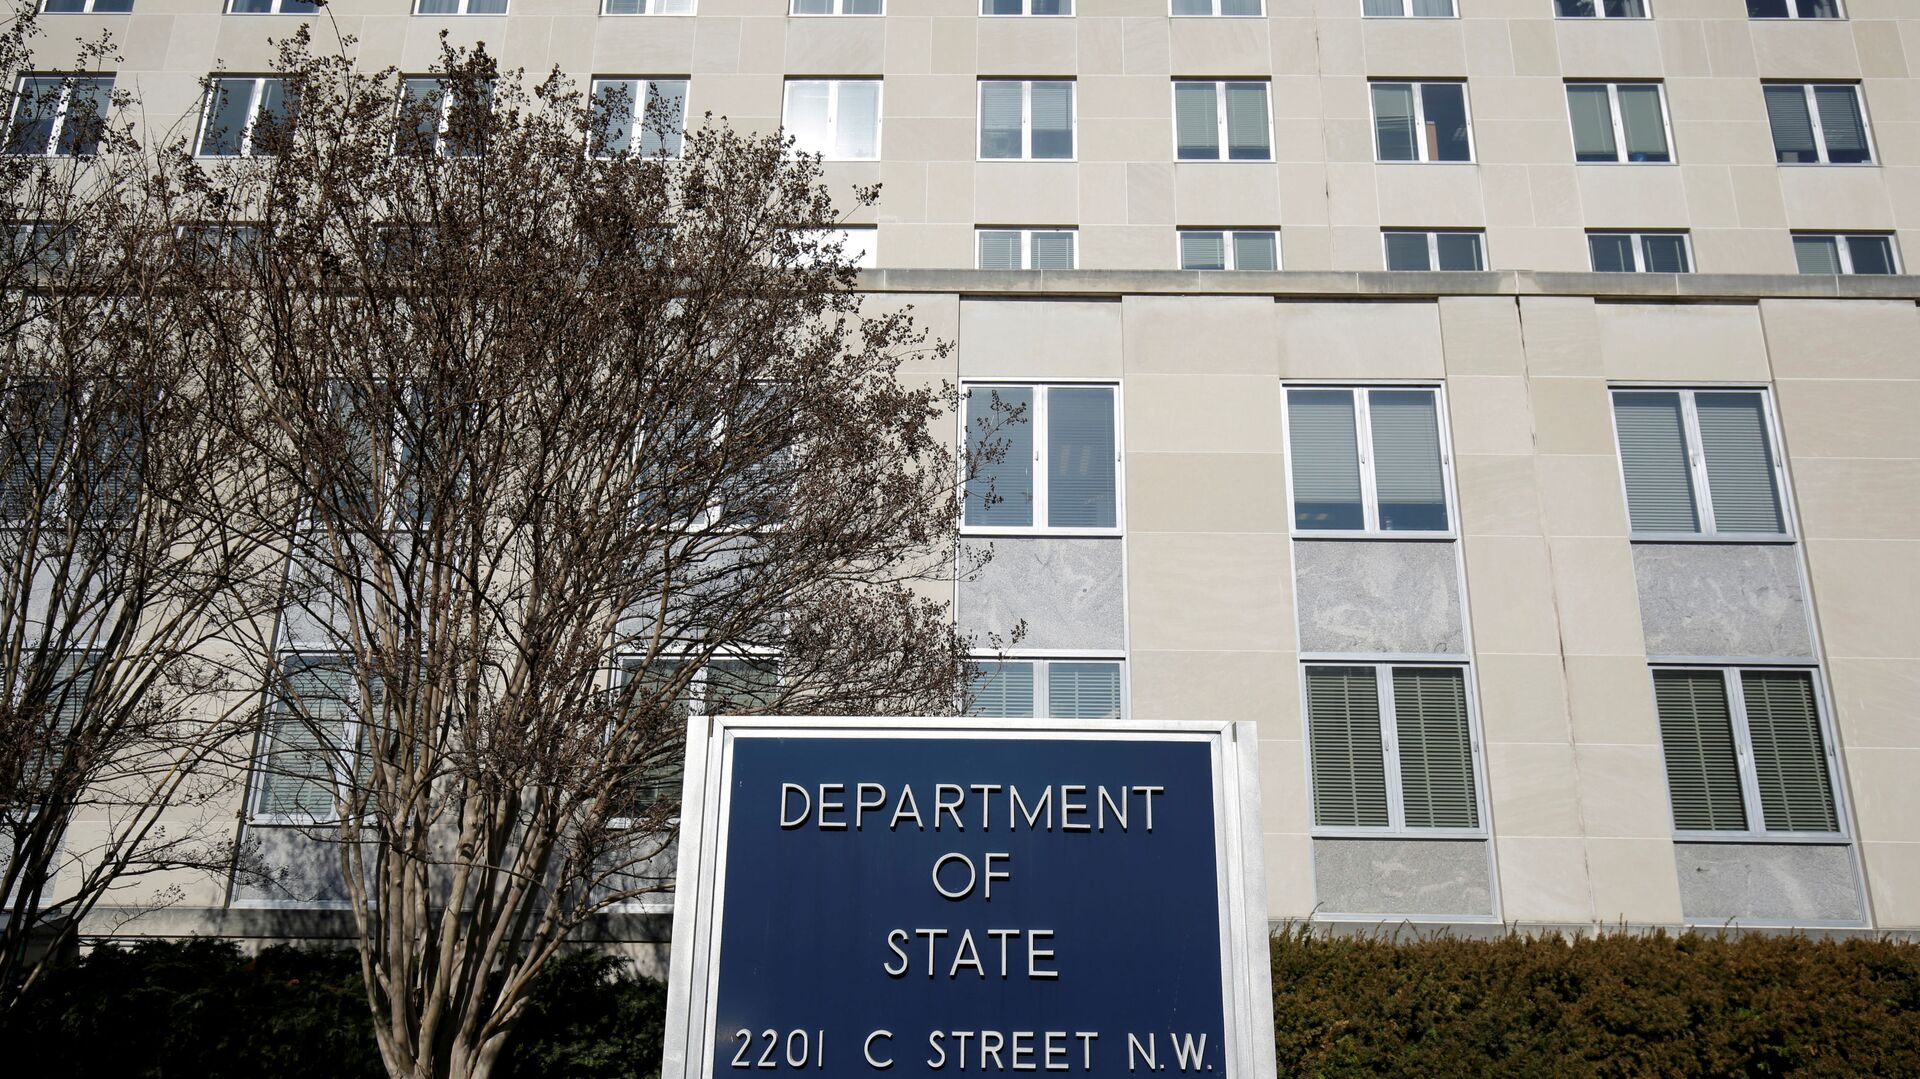 The State Department Building is pictured in Washington, U.S., January 26, 2017 - Sputnik International, 1920, 14.09.2021